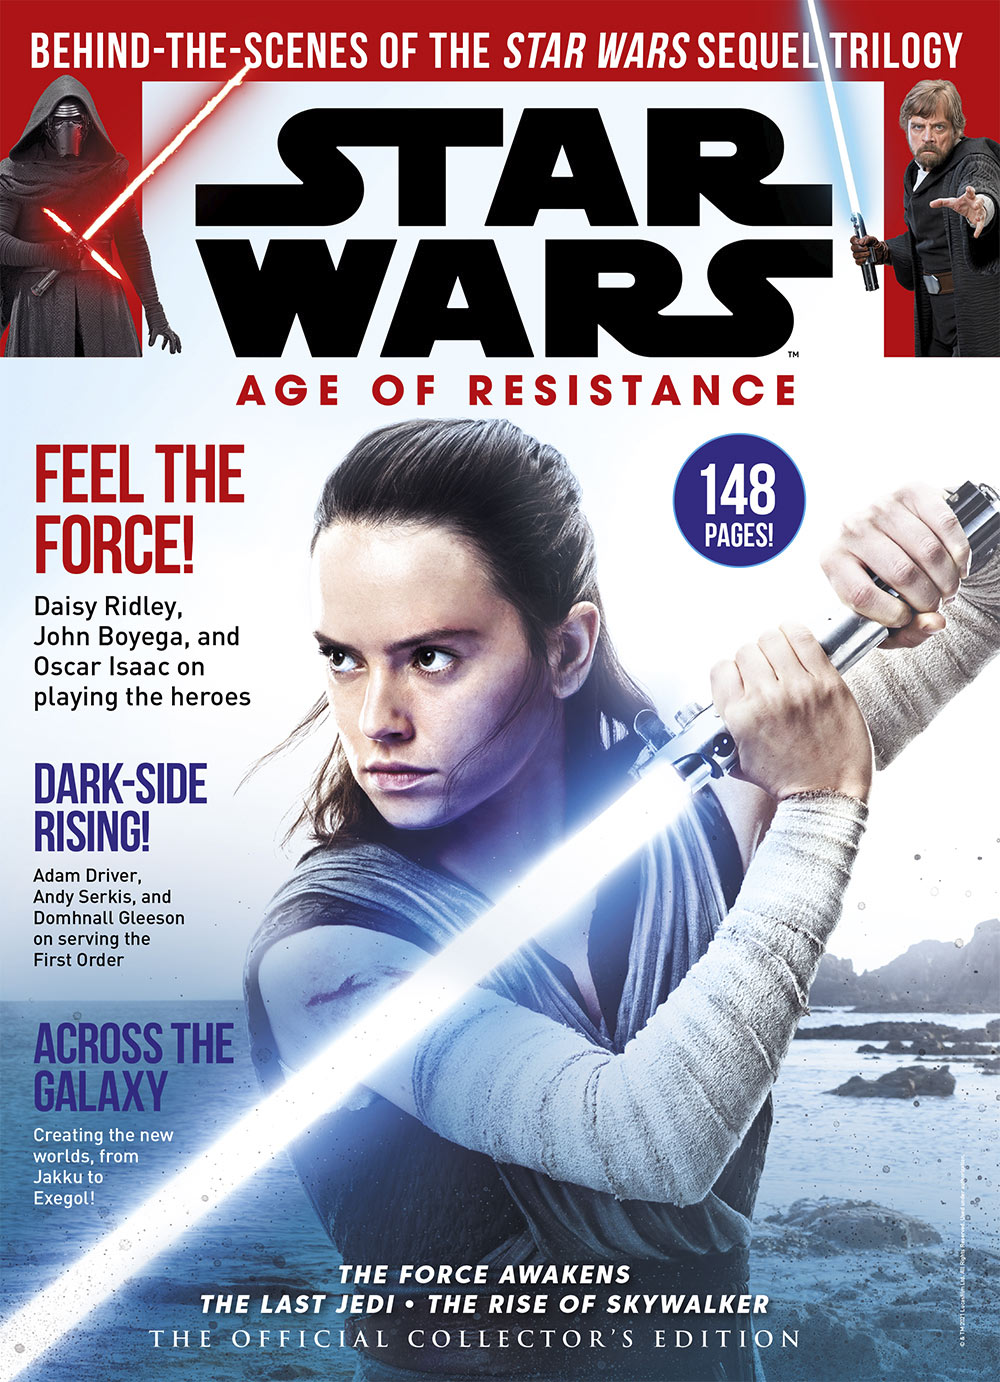 Star Wars: The Age of Resistance cover